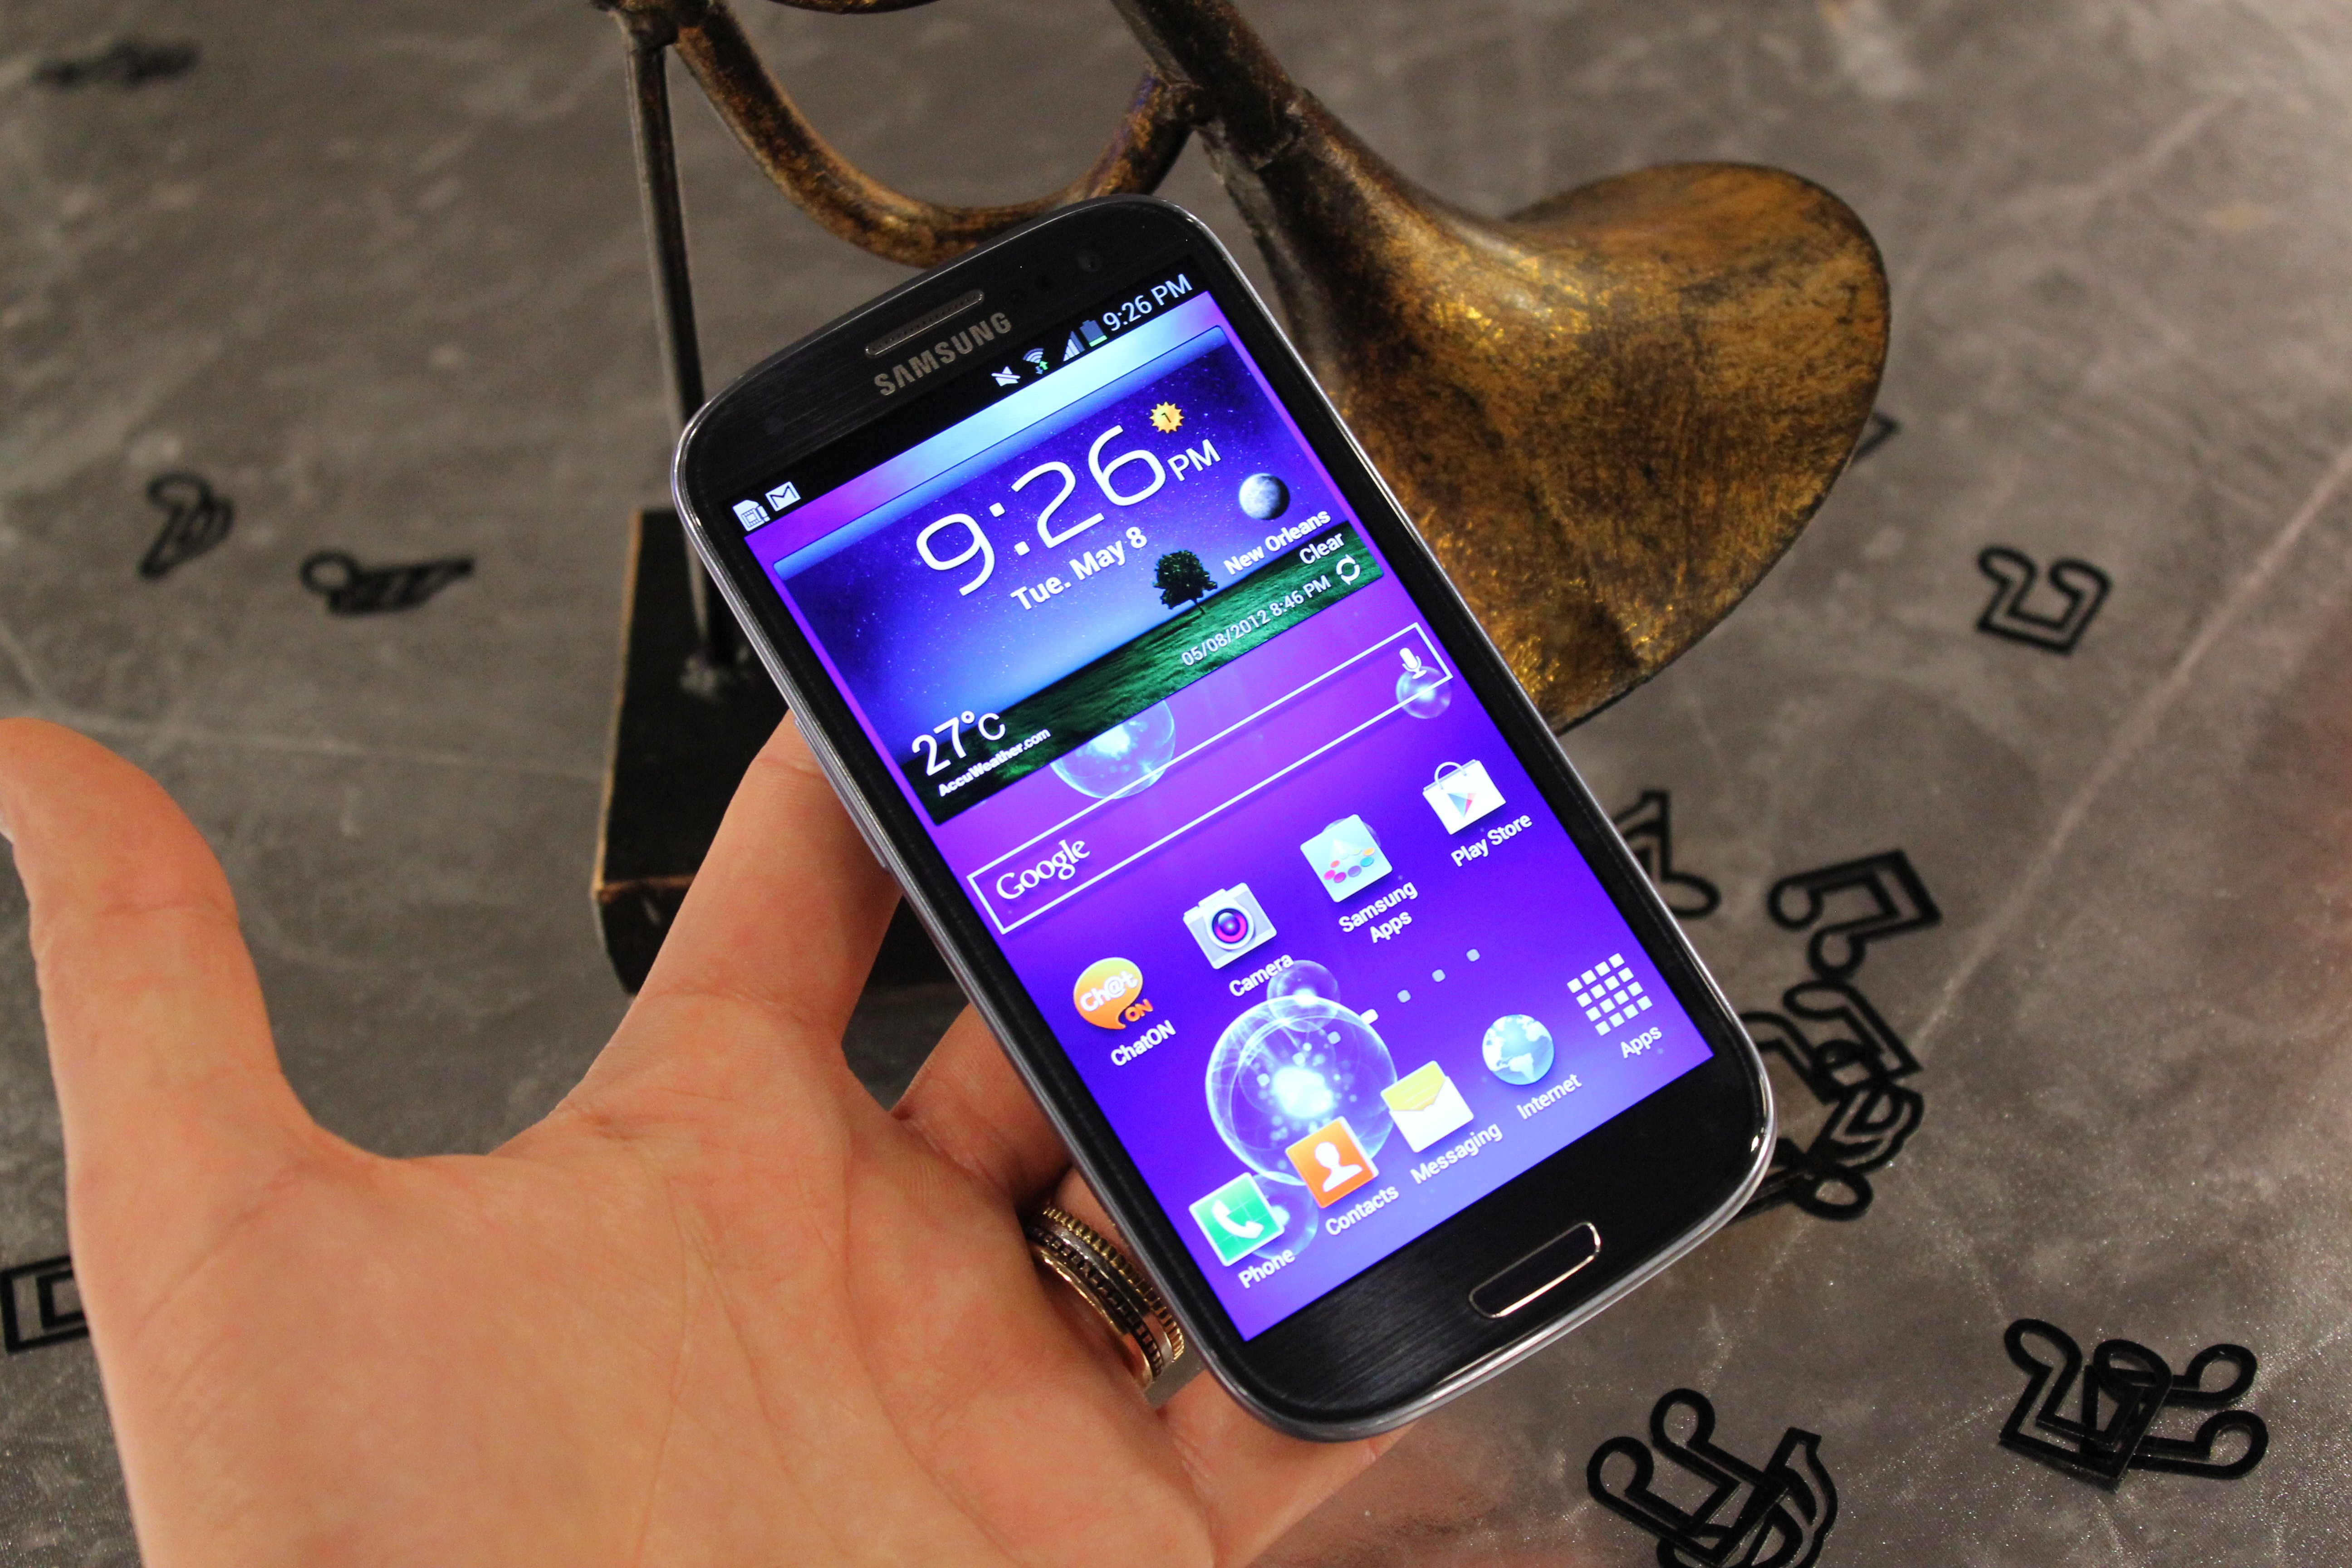 MetroPCS Is Getting The Galaxy S III Too, Priced At $499 Without A